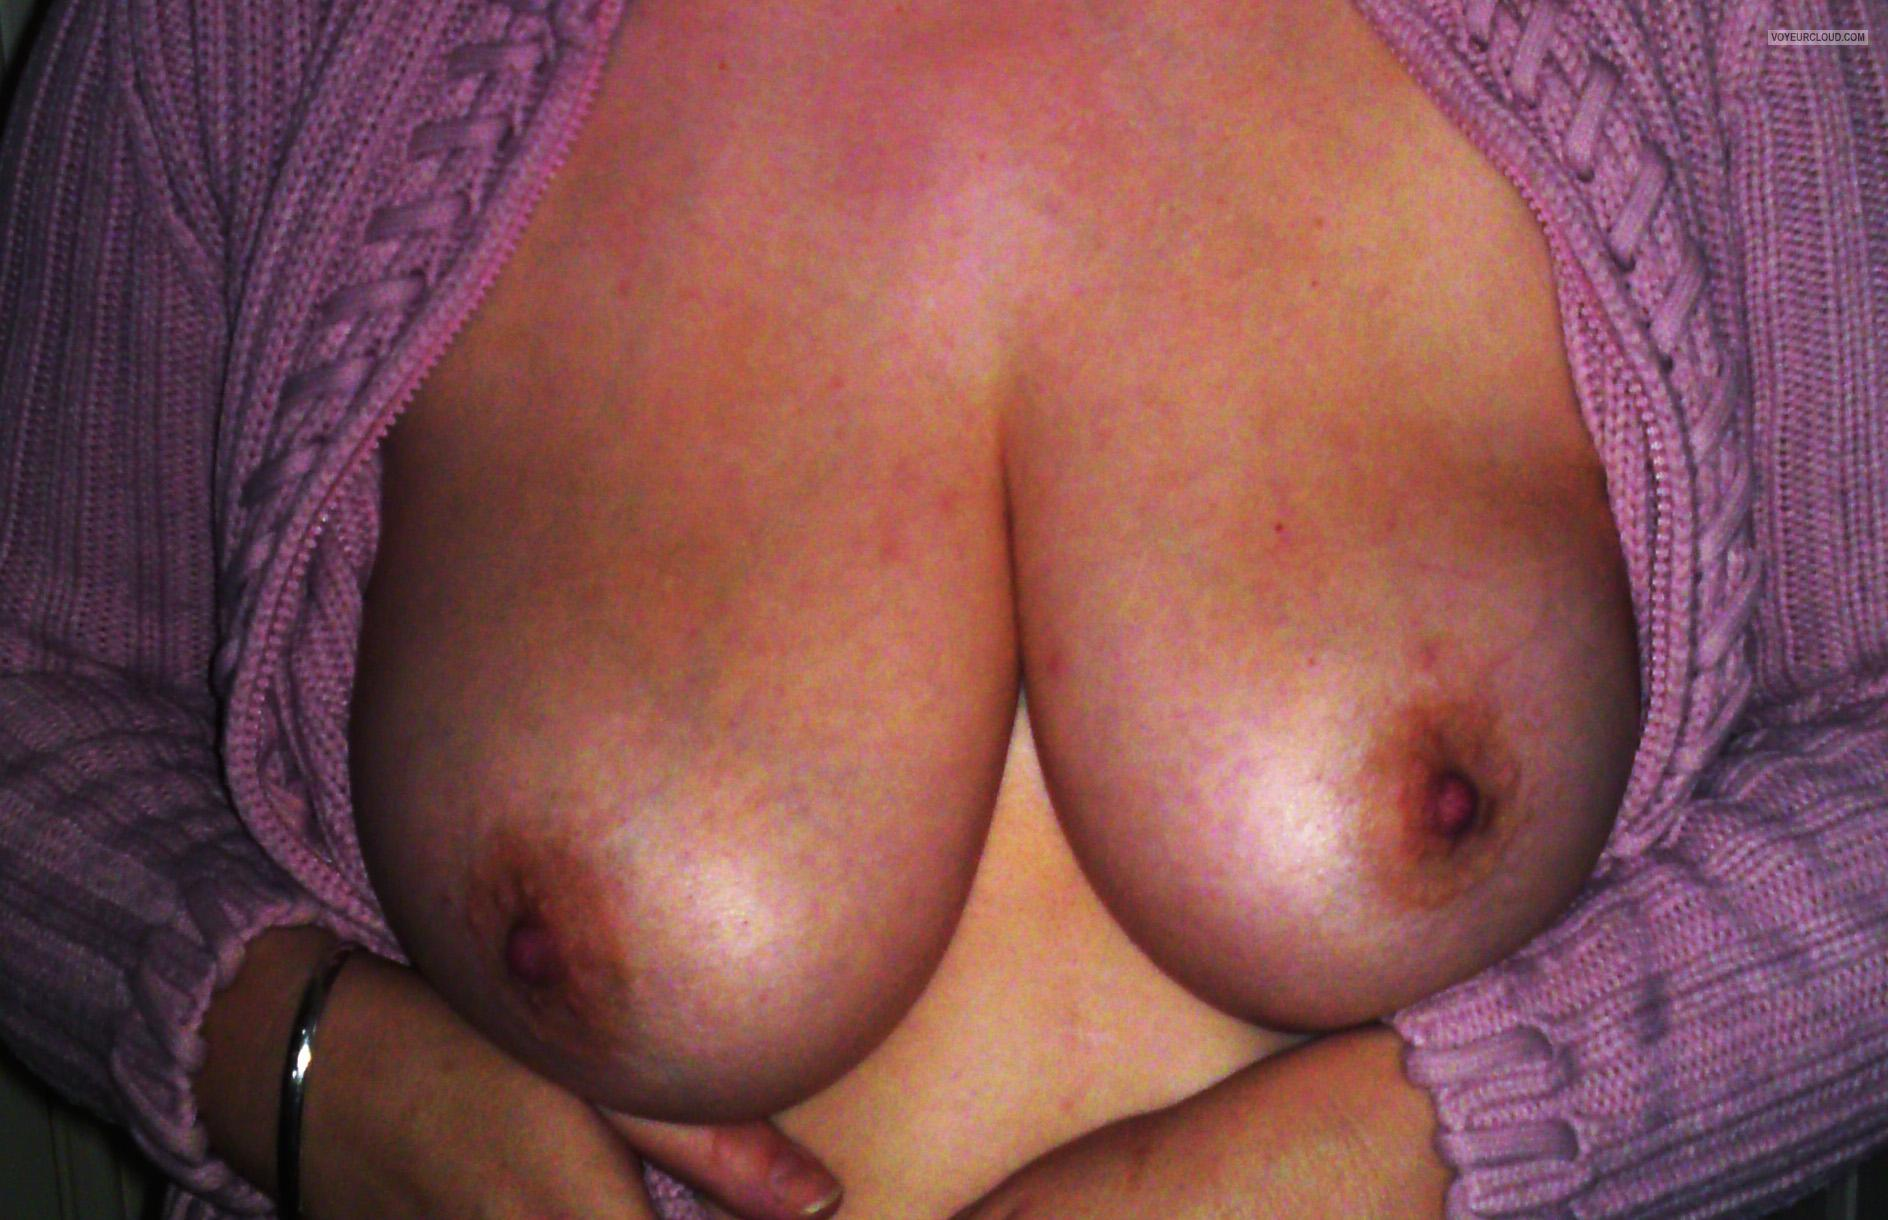 Tit Flash: My Big Tits - Rachel from United States